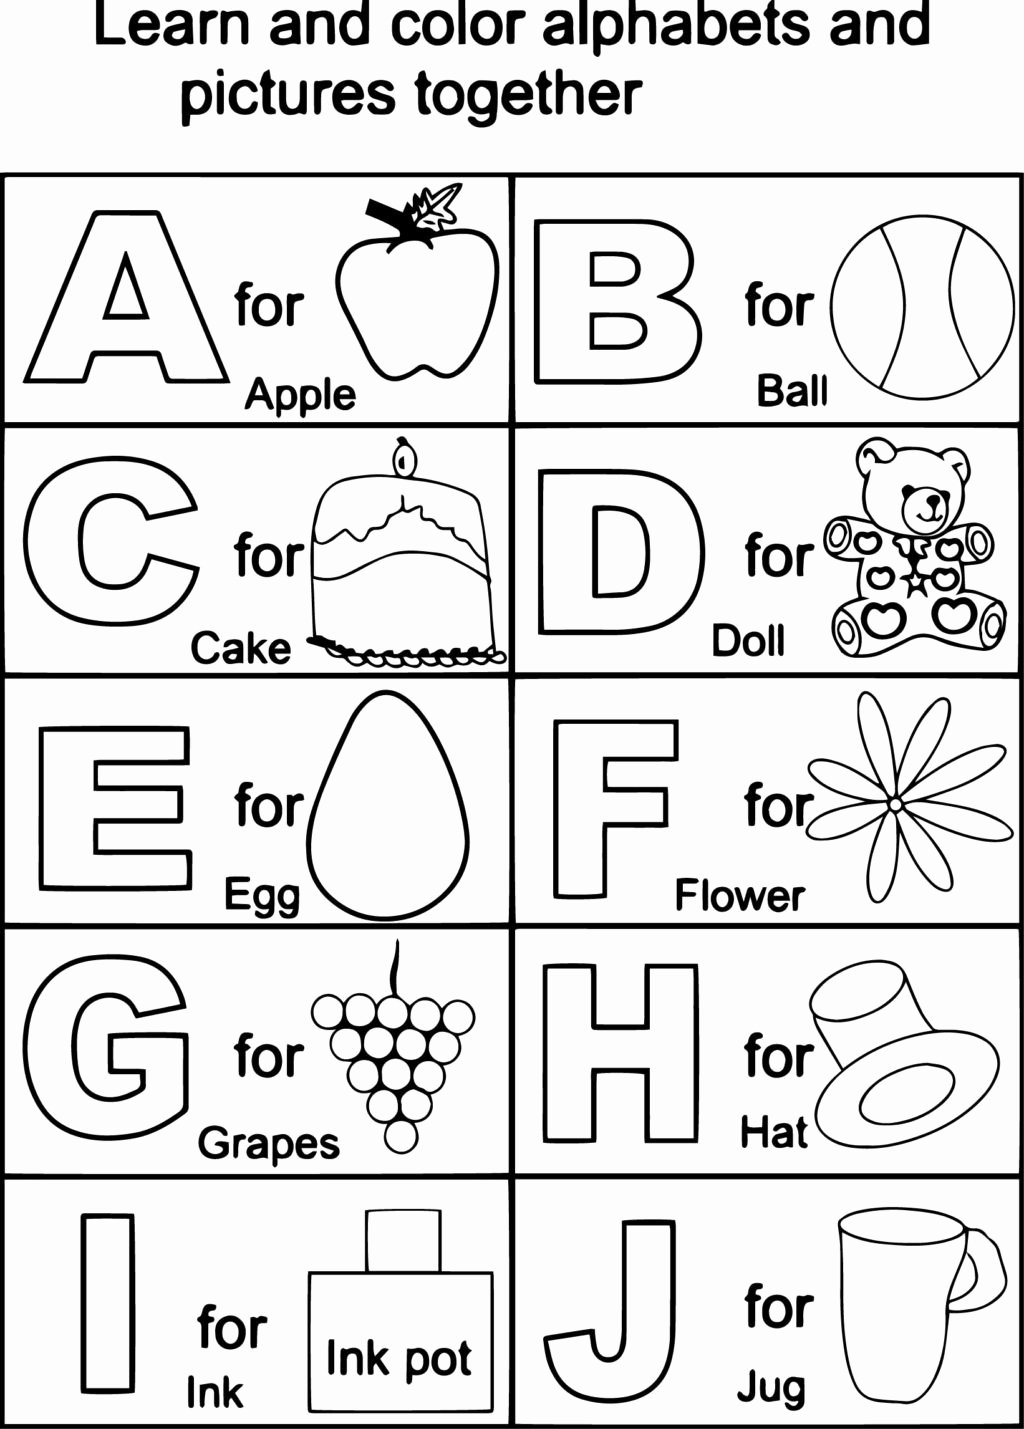 Alphabet Coloring Worksheets for Preschoolers Inspirational Free Printable Alphabet Coloring Pages Tag Fabulous Arabic